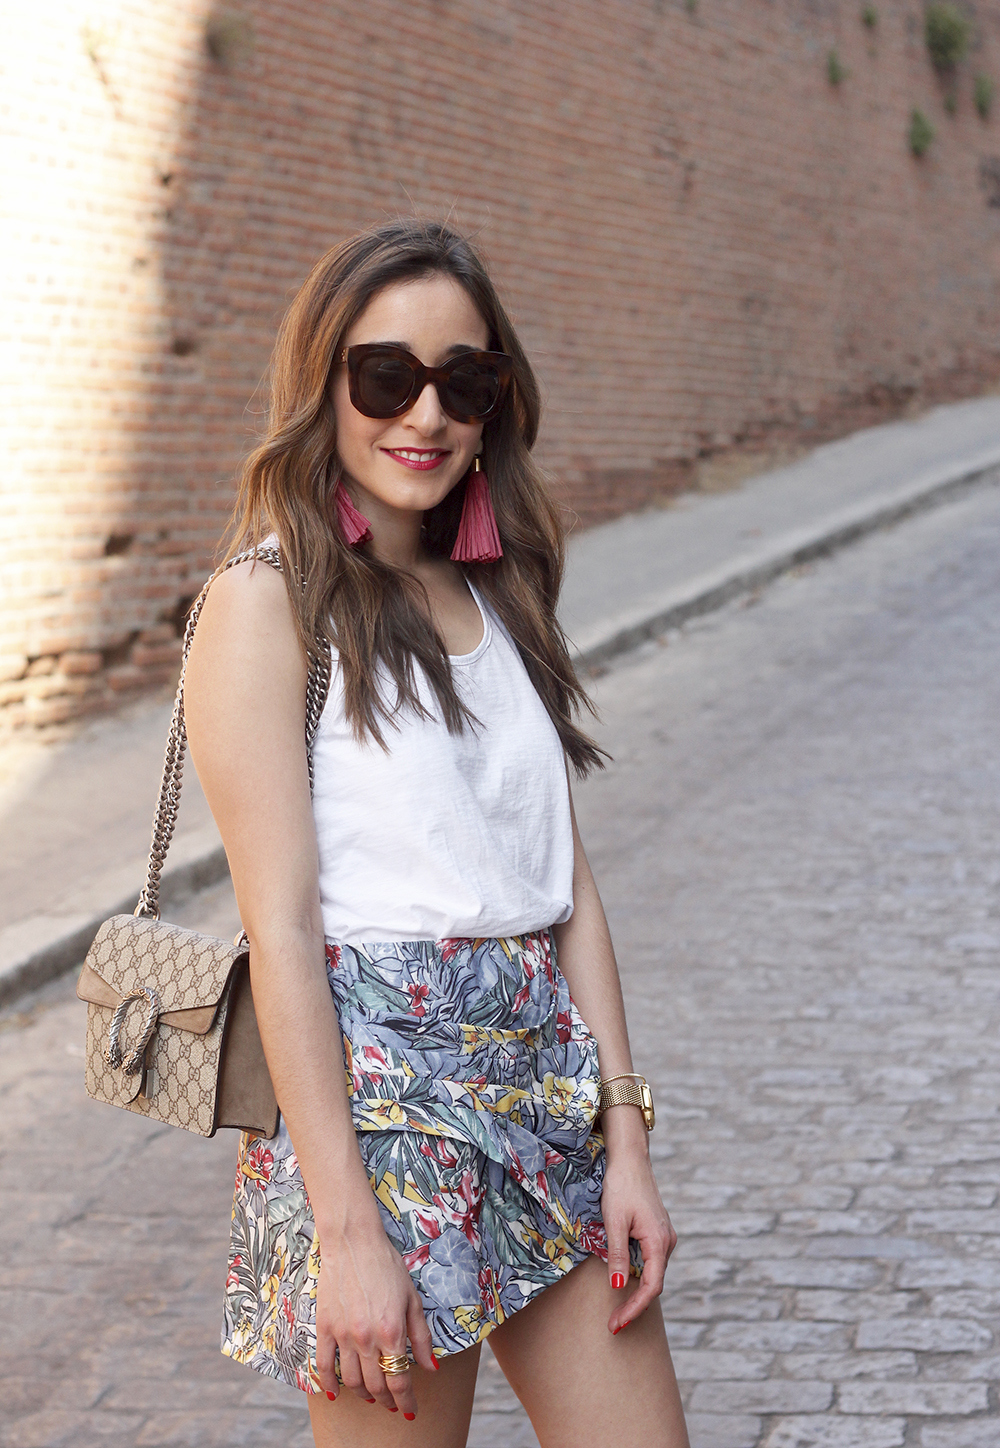 Tropical Skirt gucci bag superga outfit style summer12